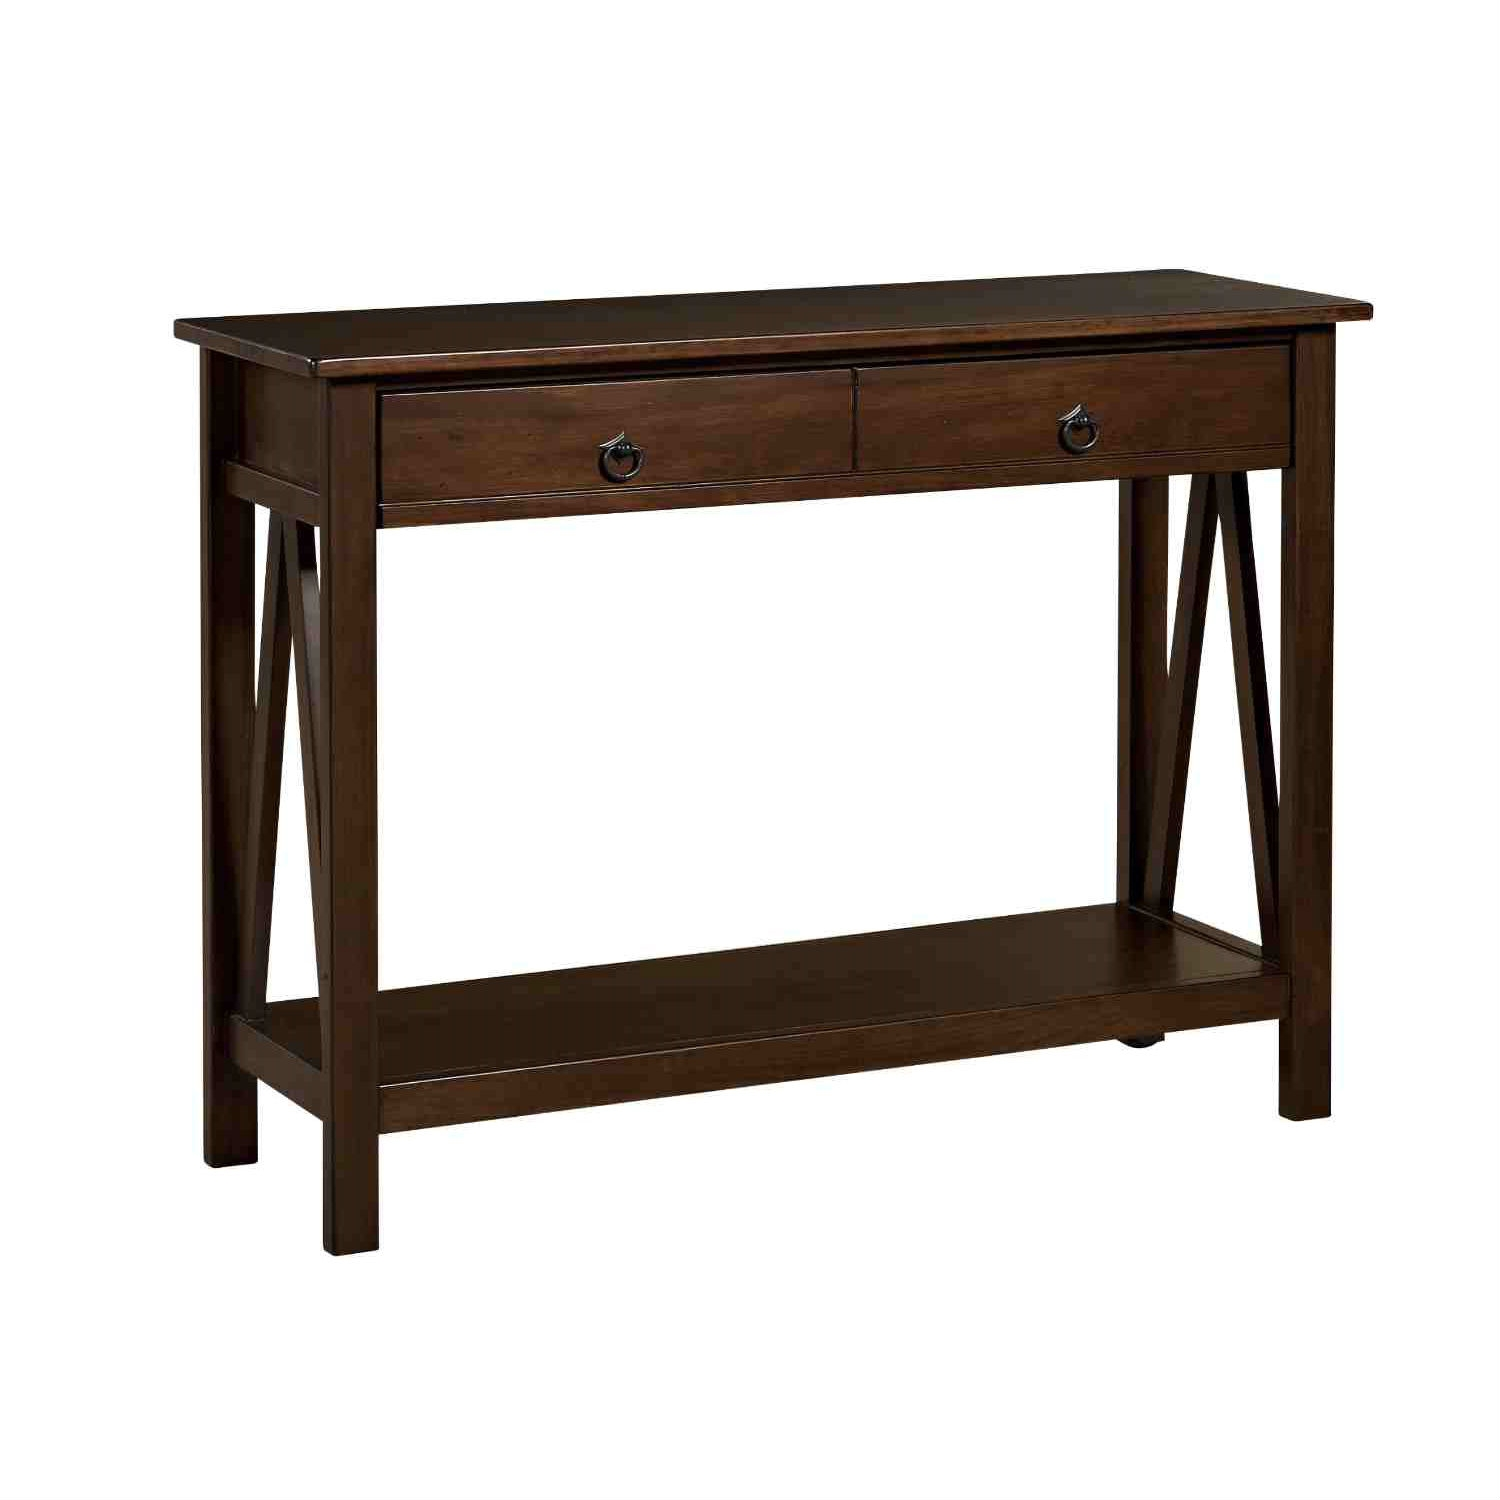 2-Drawer Console Sofa Table Living Room Storage Shelf in Tobacco ...